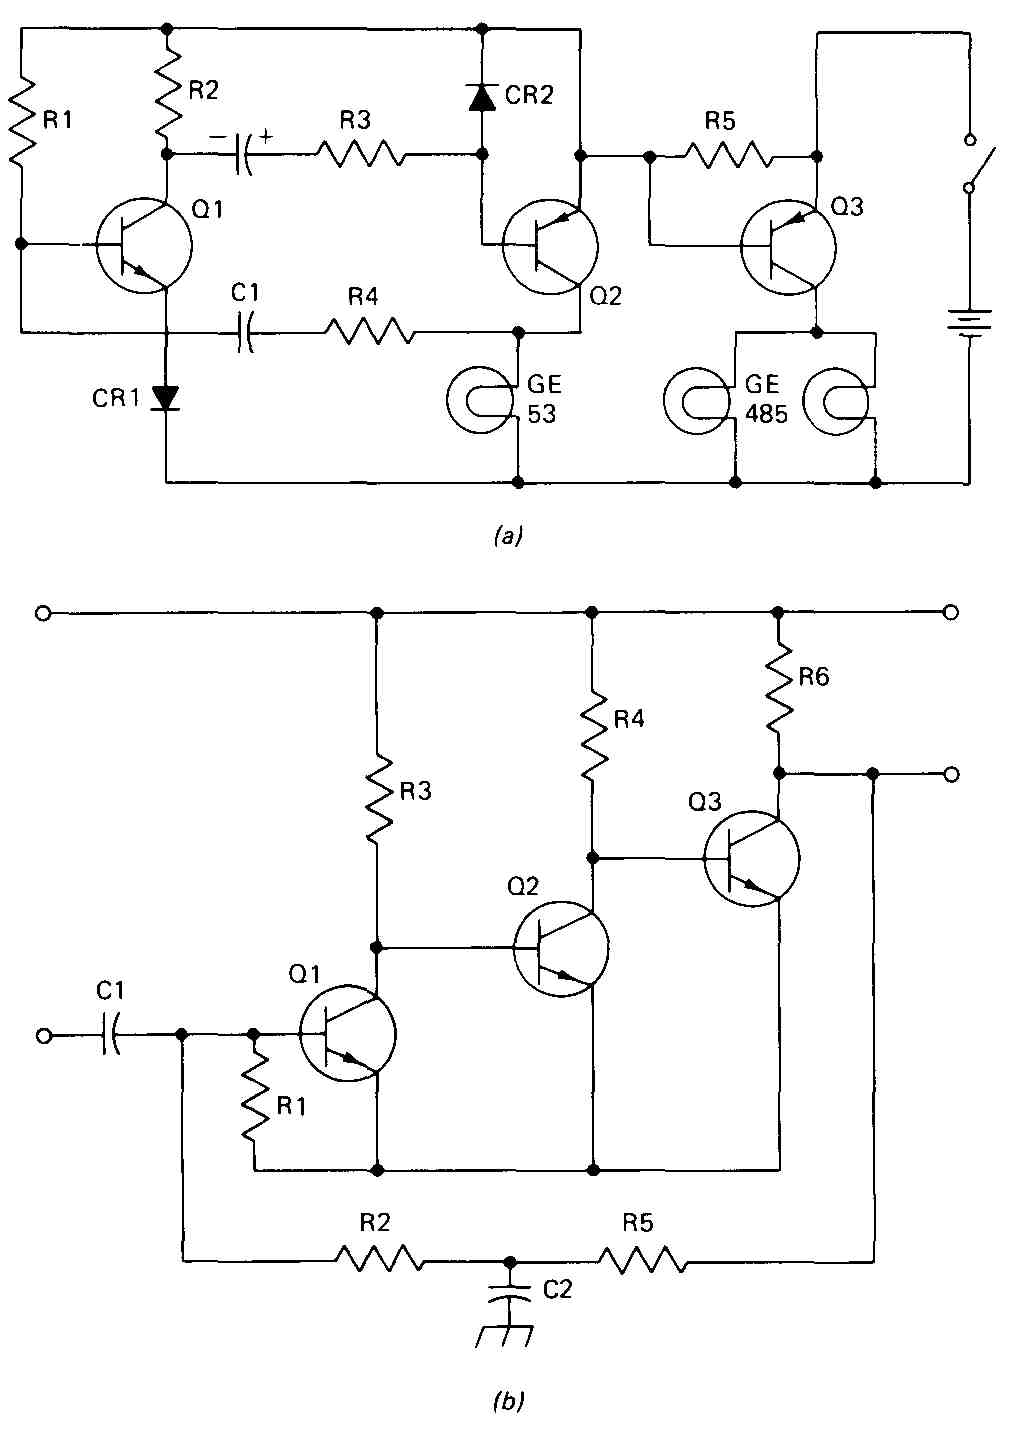 hight resolution of electrical circuit diagram electric diagram electronic circuit electronic circuit diagrams wiring diagrams konsult electrical circuit diagram